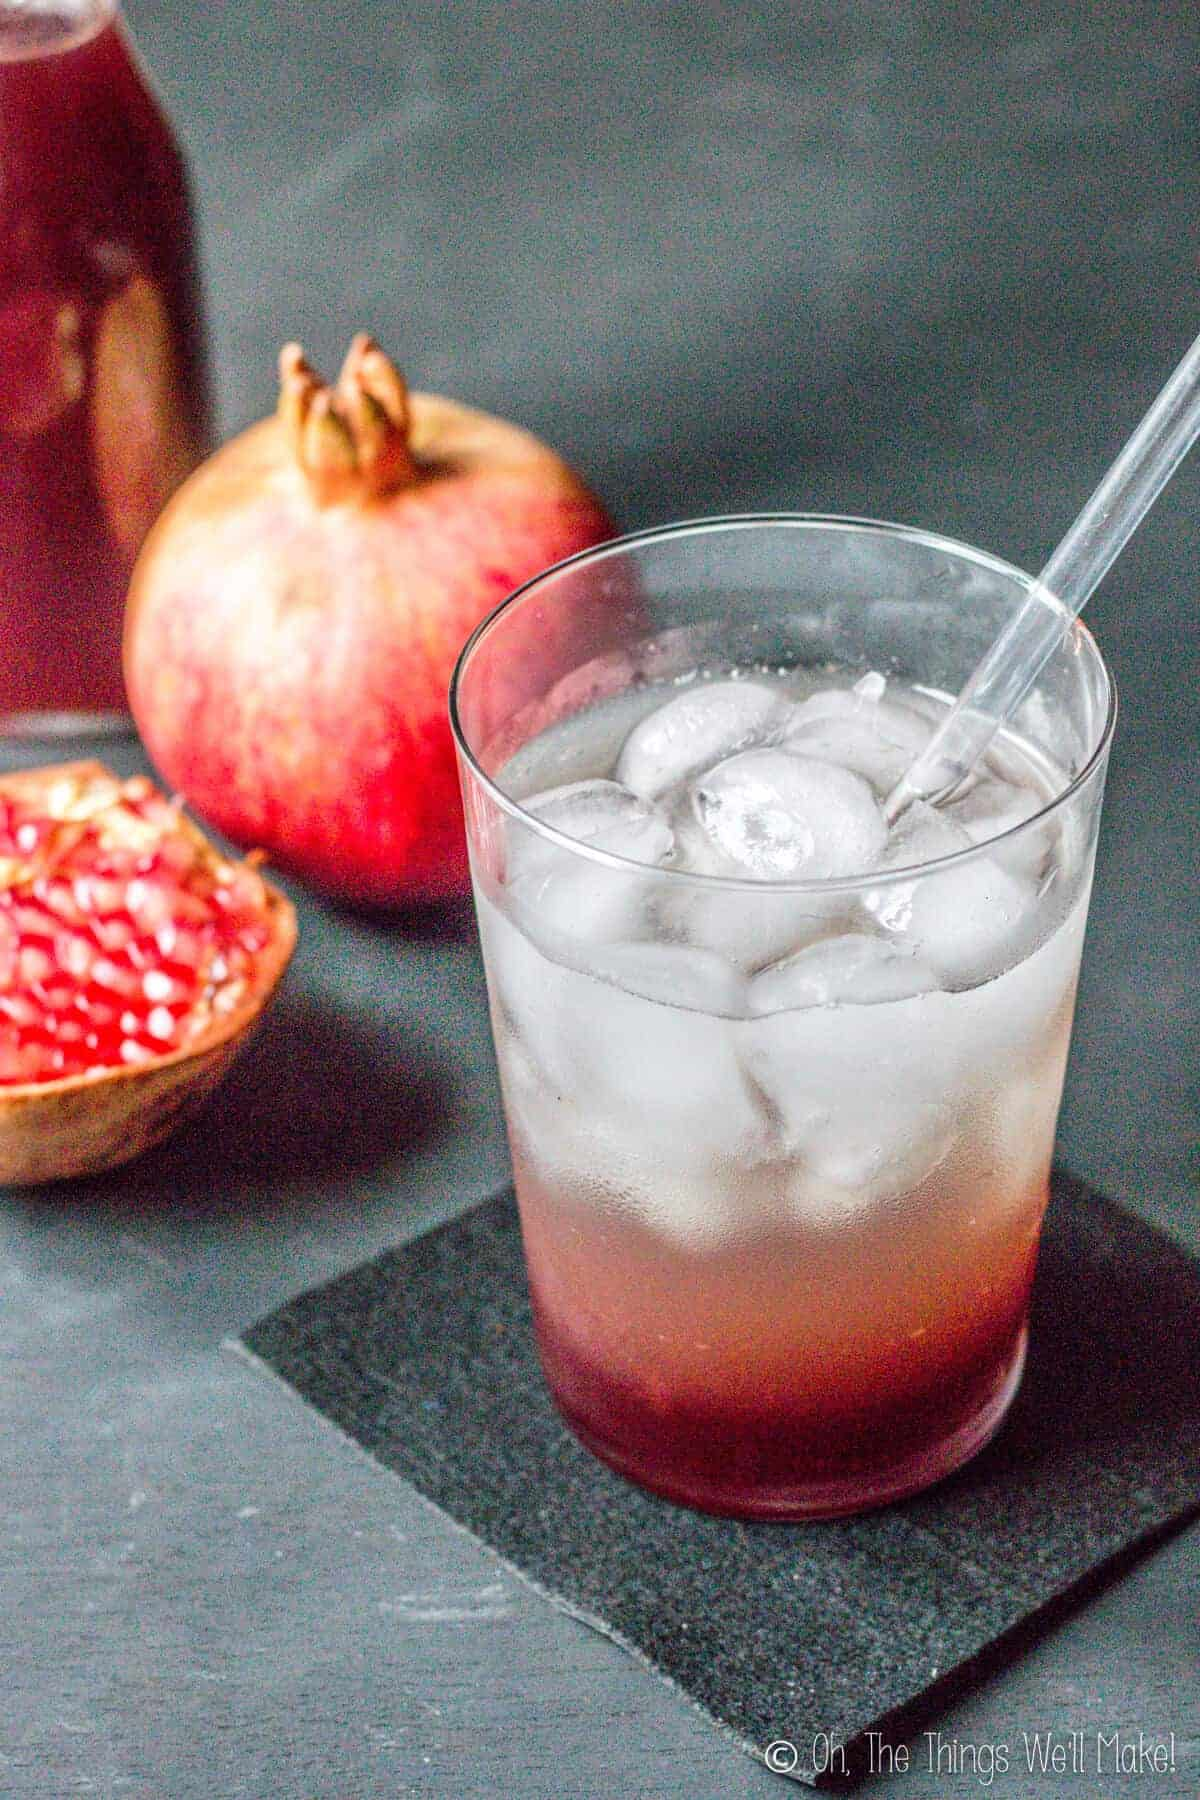 Closeup of a glass of soda and grenadine over ice in front of some pomegranates and a bottle of homemade grenadine.